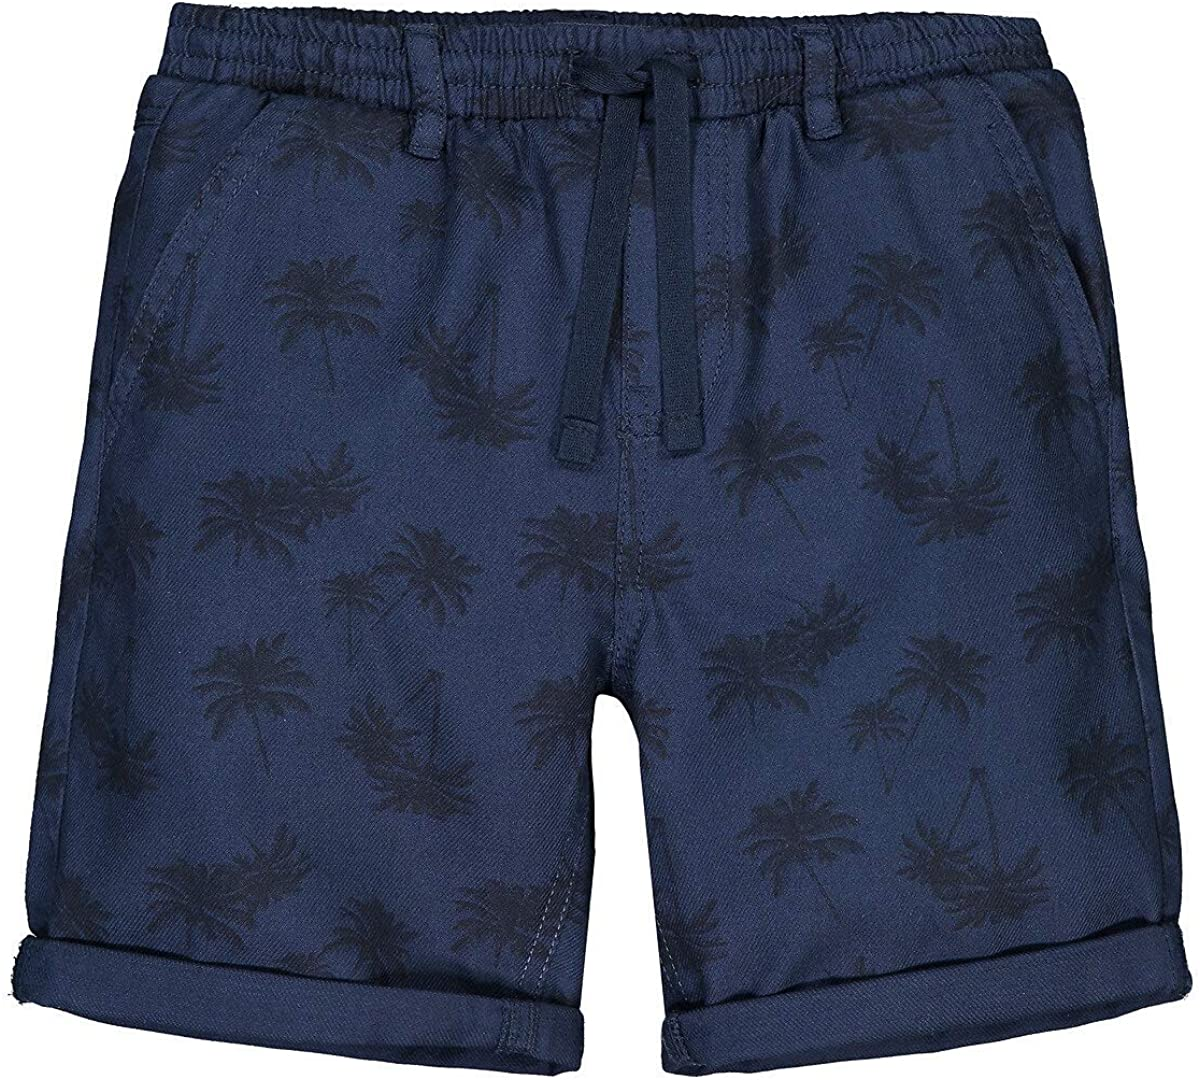 La Redoute Collection Cotton Bermuda Shorts in Palm Tree Print, 3-12 Years